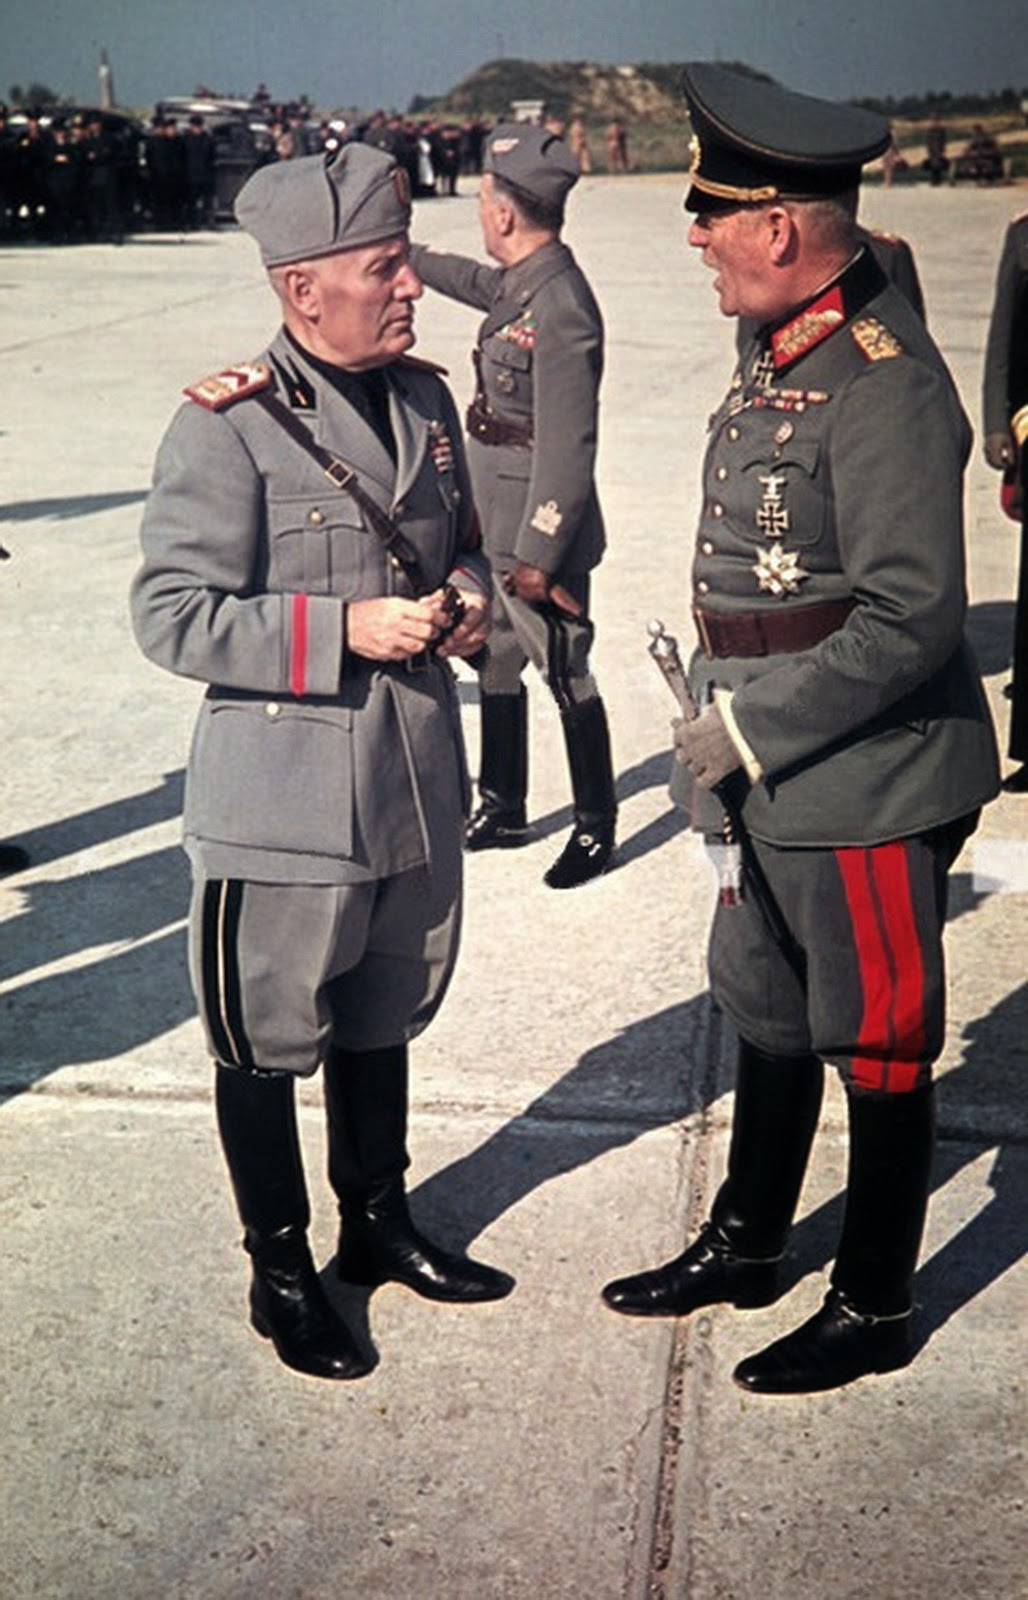 1943 19 july Benito Mussolini Speaks with Wilhelm Keitel at Feltre Airfield